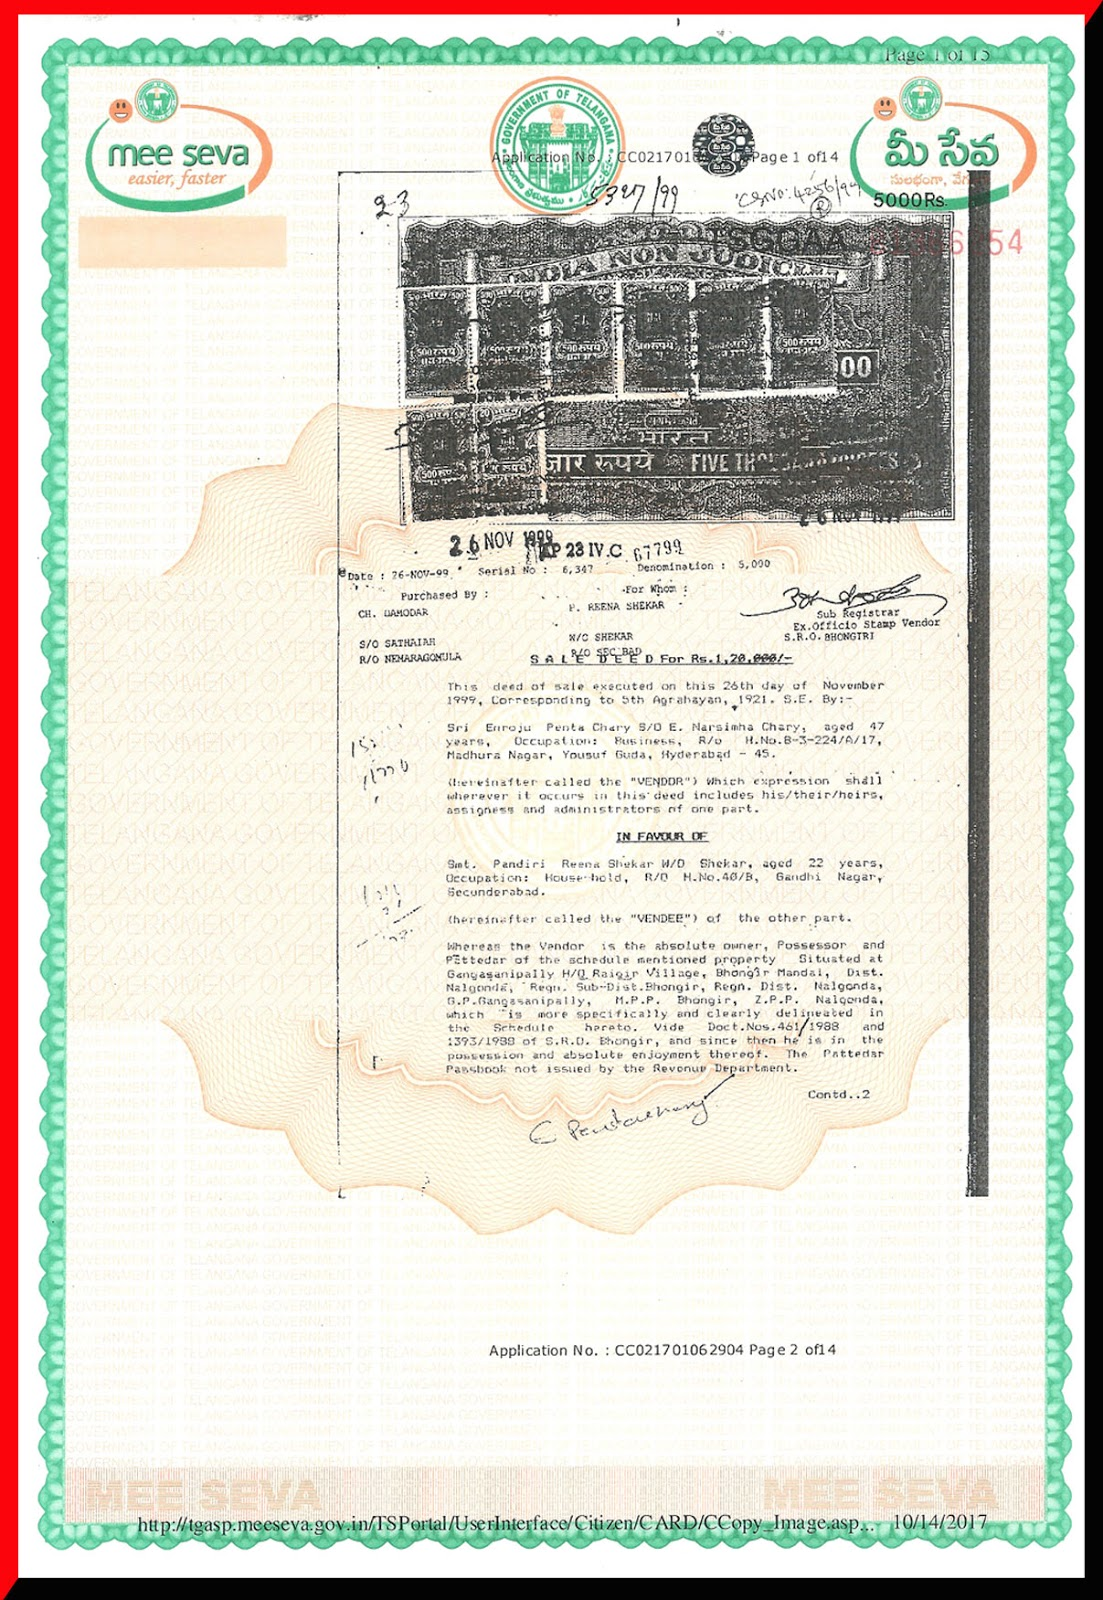 sale deed fabricated documents No.5327 of 1999